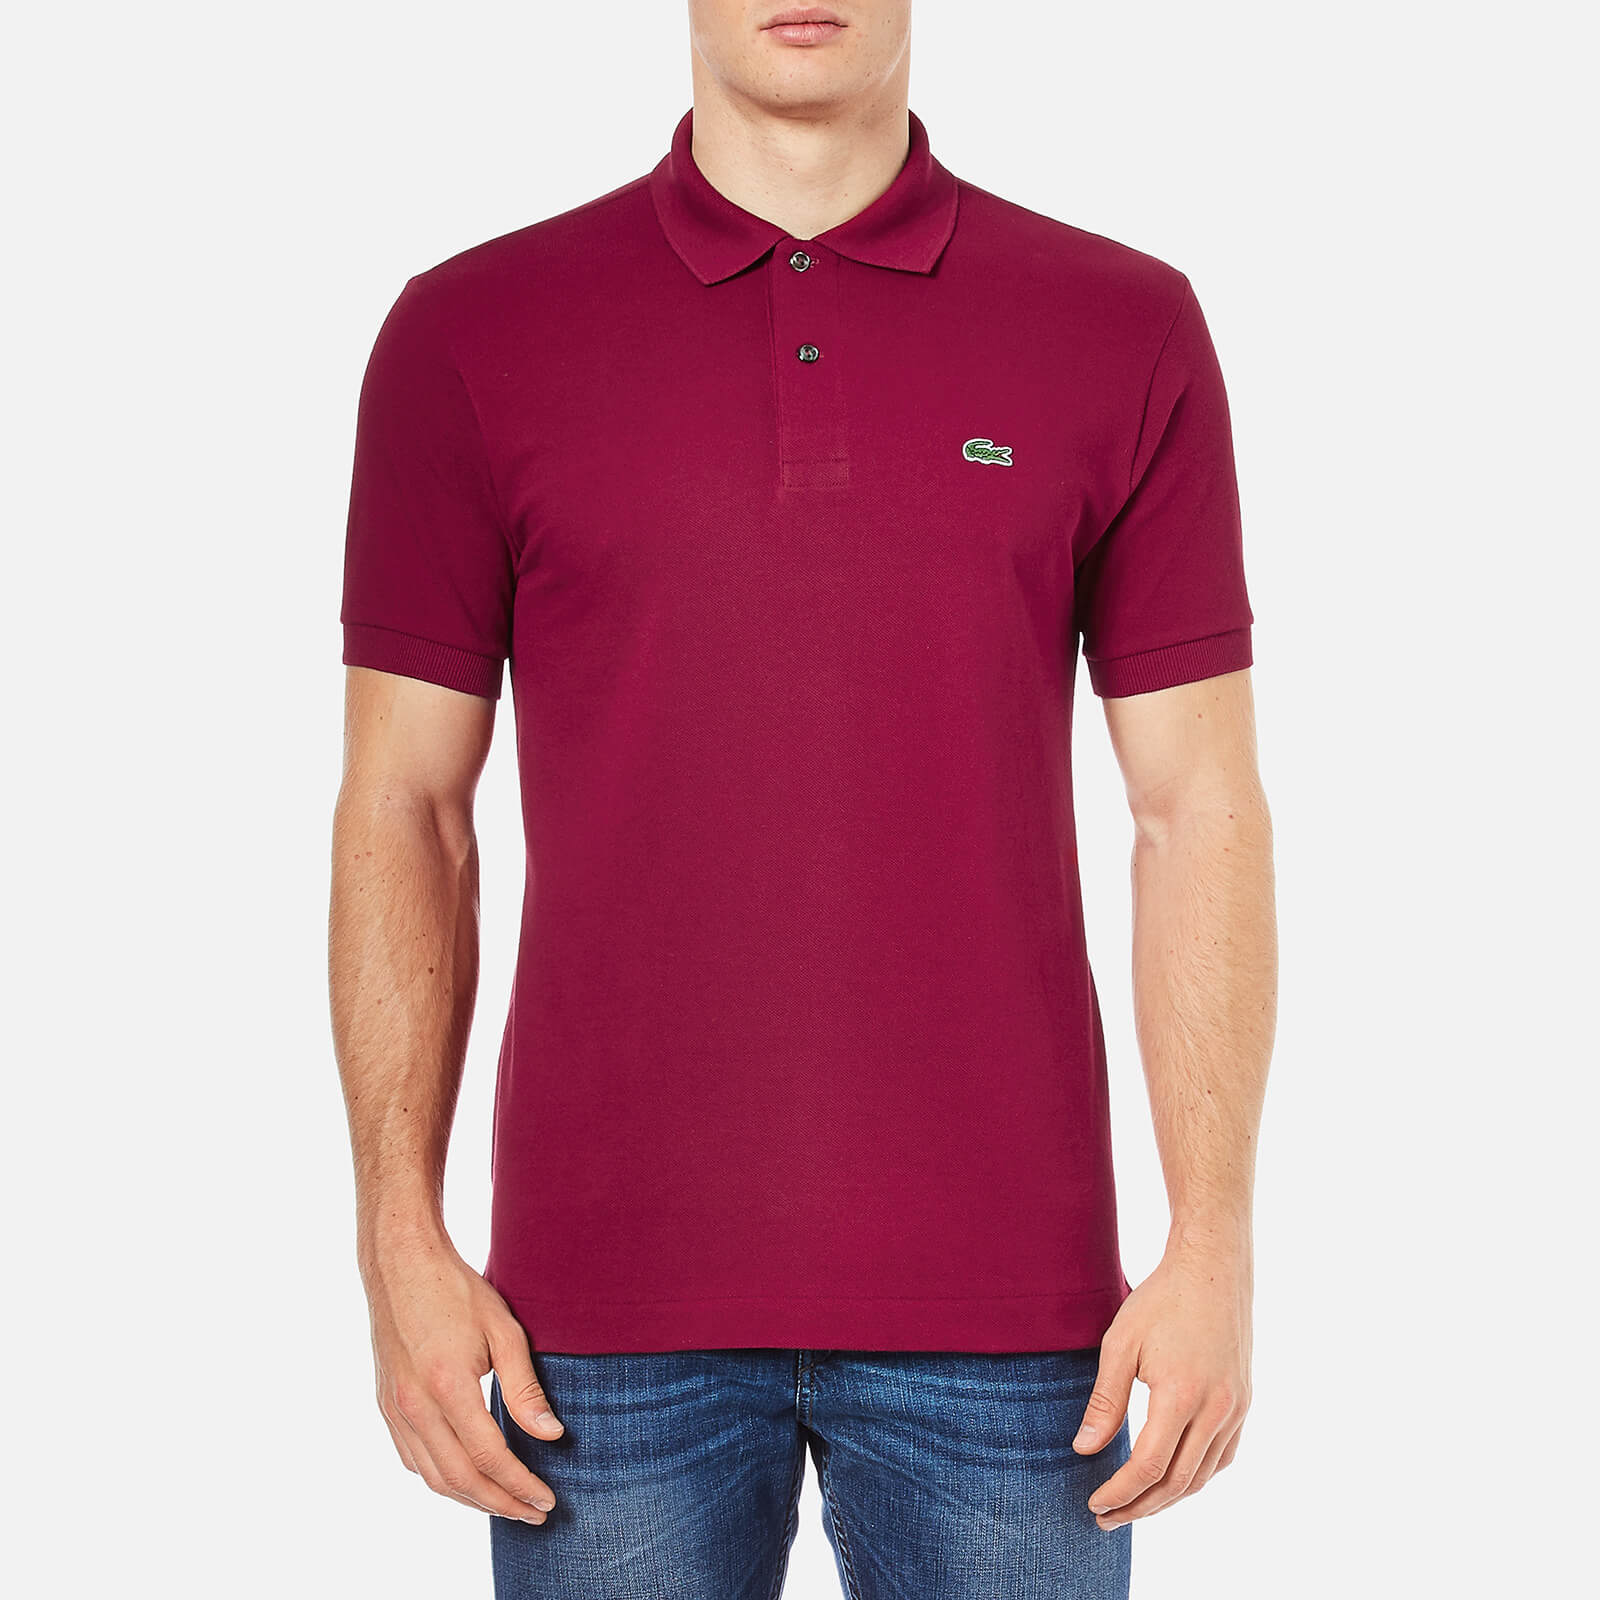 b1d58f875b Lacoste Men's Polo Shirt - Bordeaux Clothing | TheHut.com